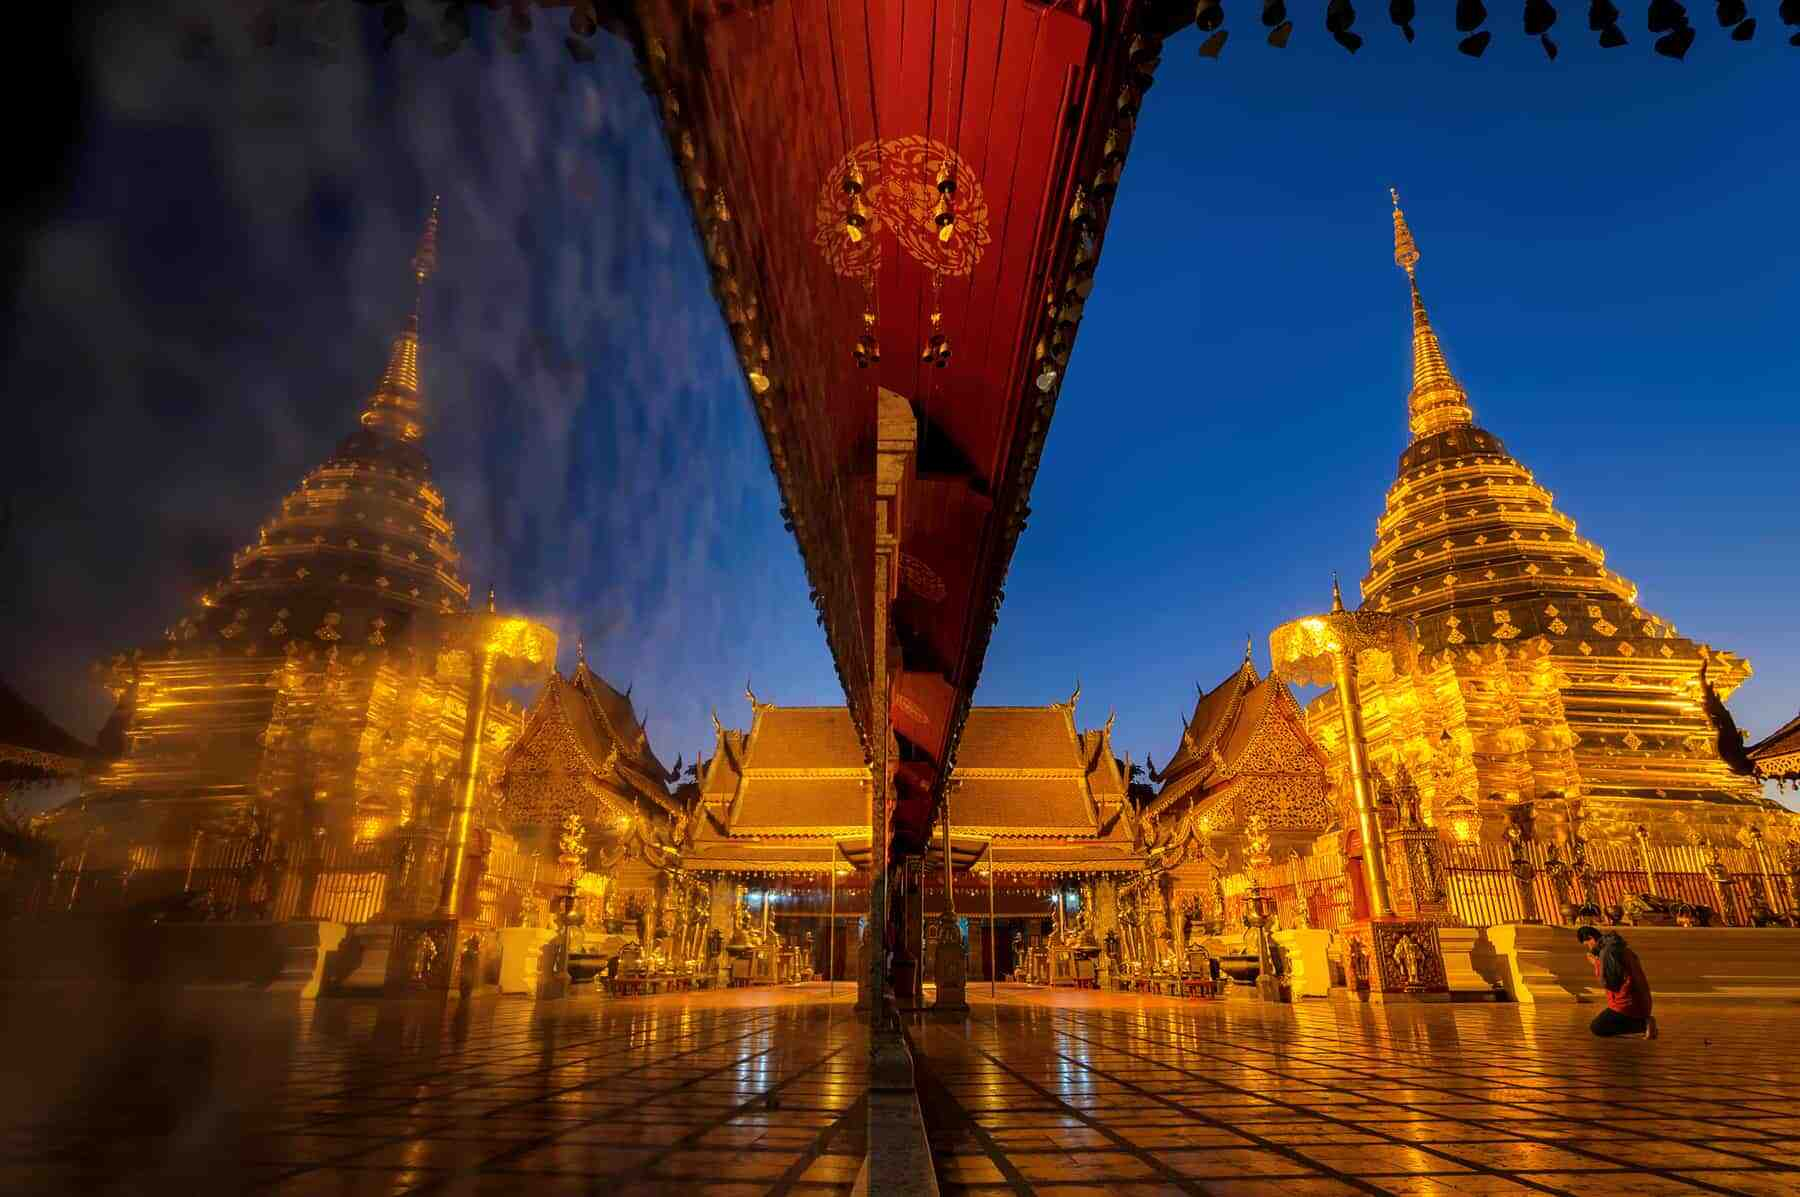 Wat phra that doi suthep temple in Chiang mai thailand, the most famous temple at twilight. Beautiful Pagoda with reflection.